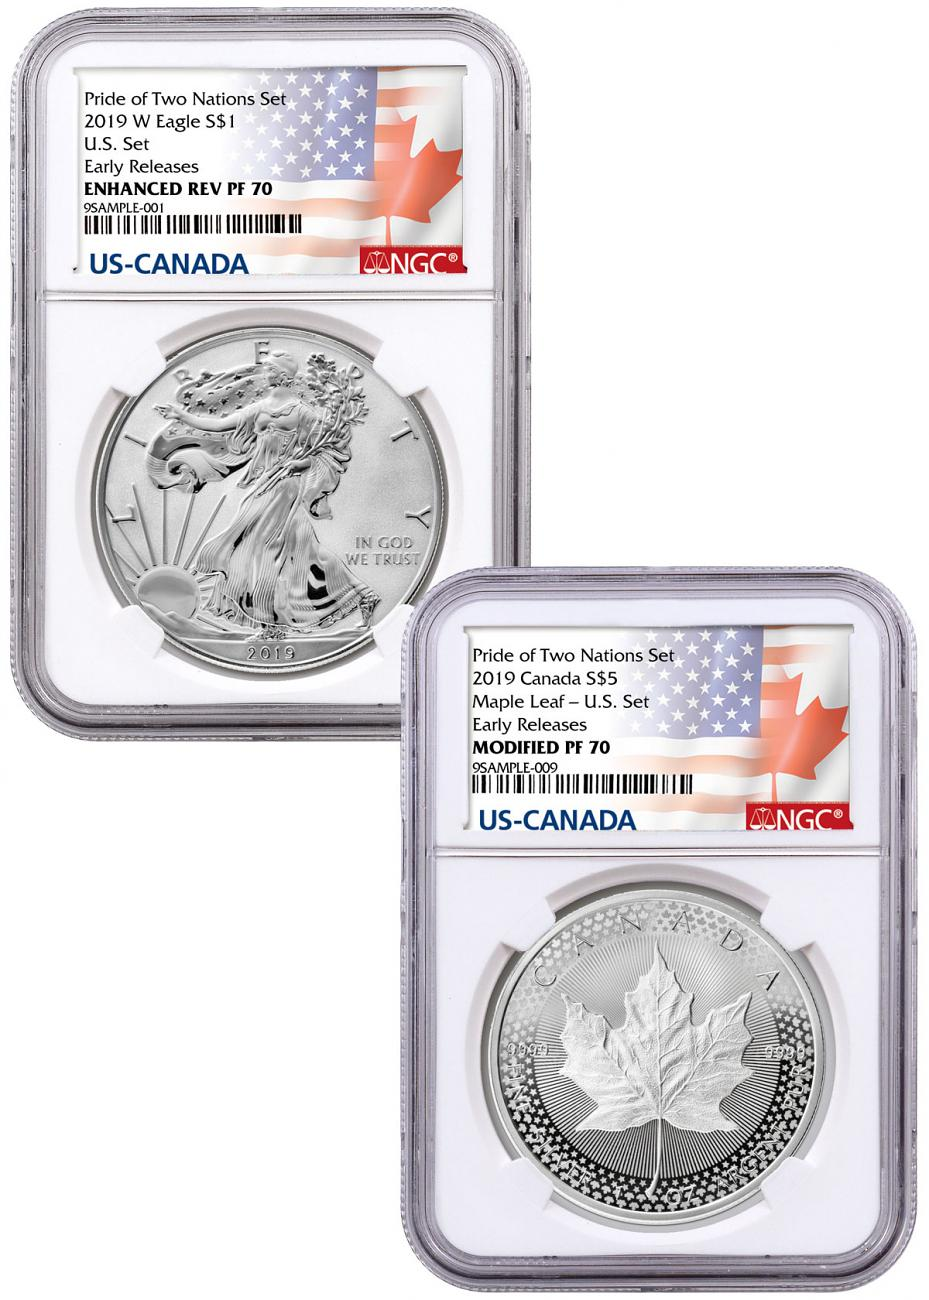 2019 United States & Canada 1 oz Silver Eagle & Maple Leaf - Pride of Two Nations 2-Coin Set NGC PF70 ER Pride of Two Nations Label with OGP